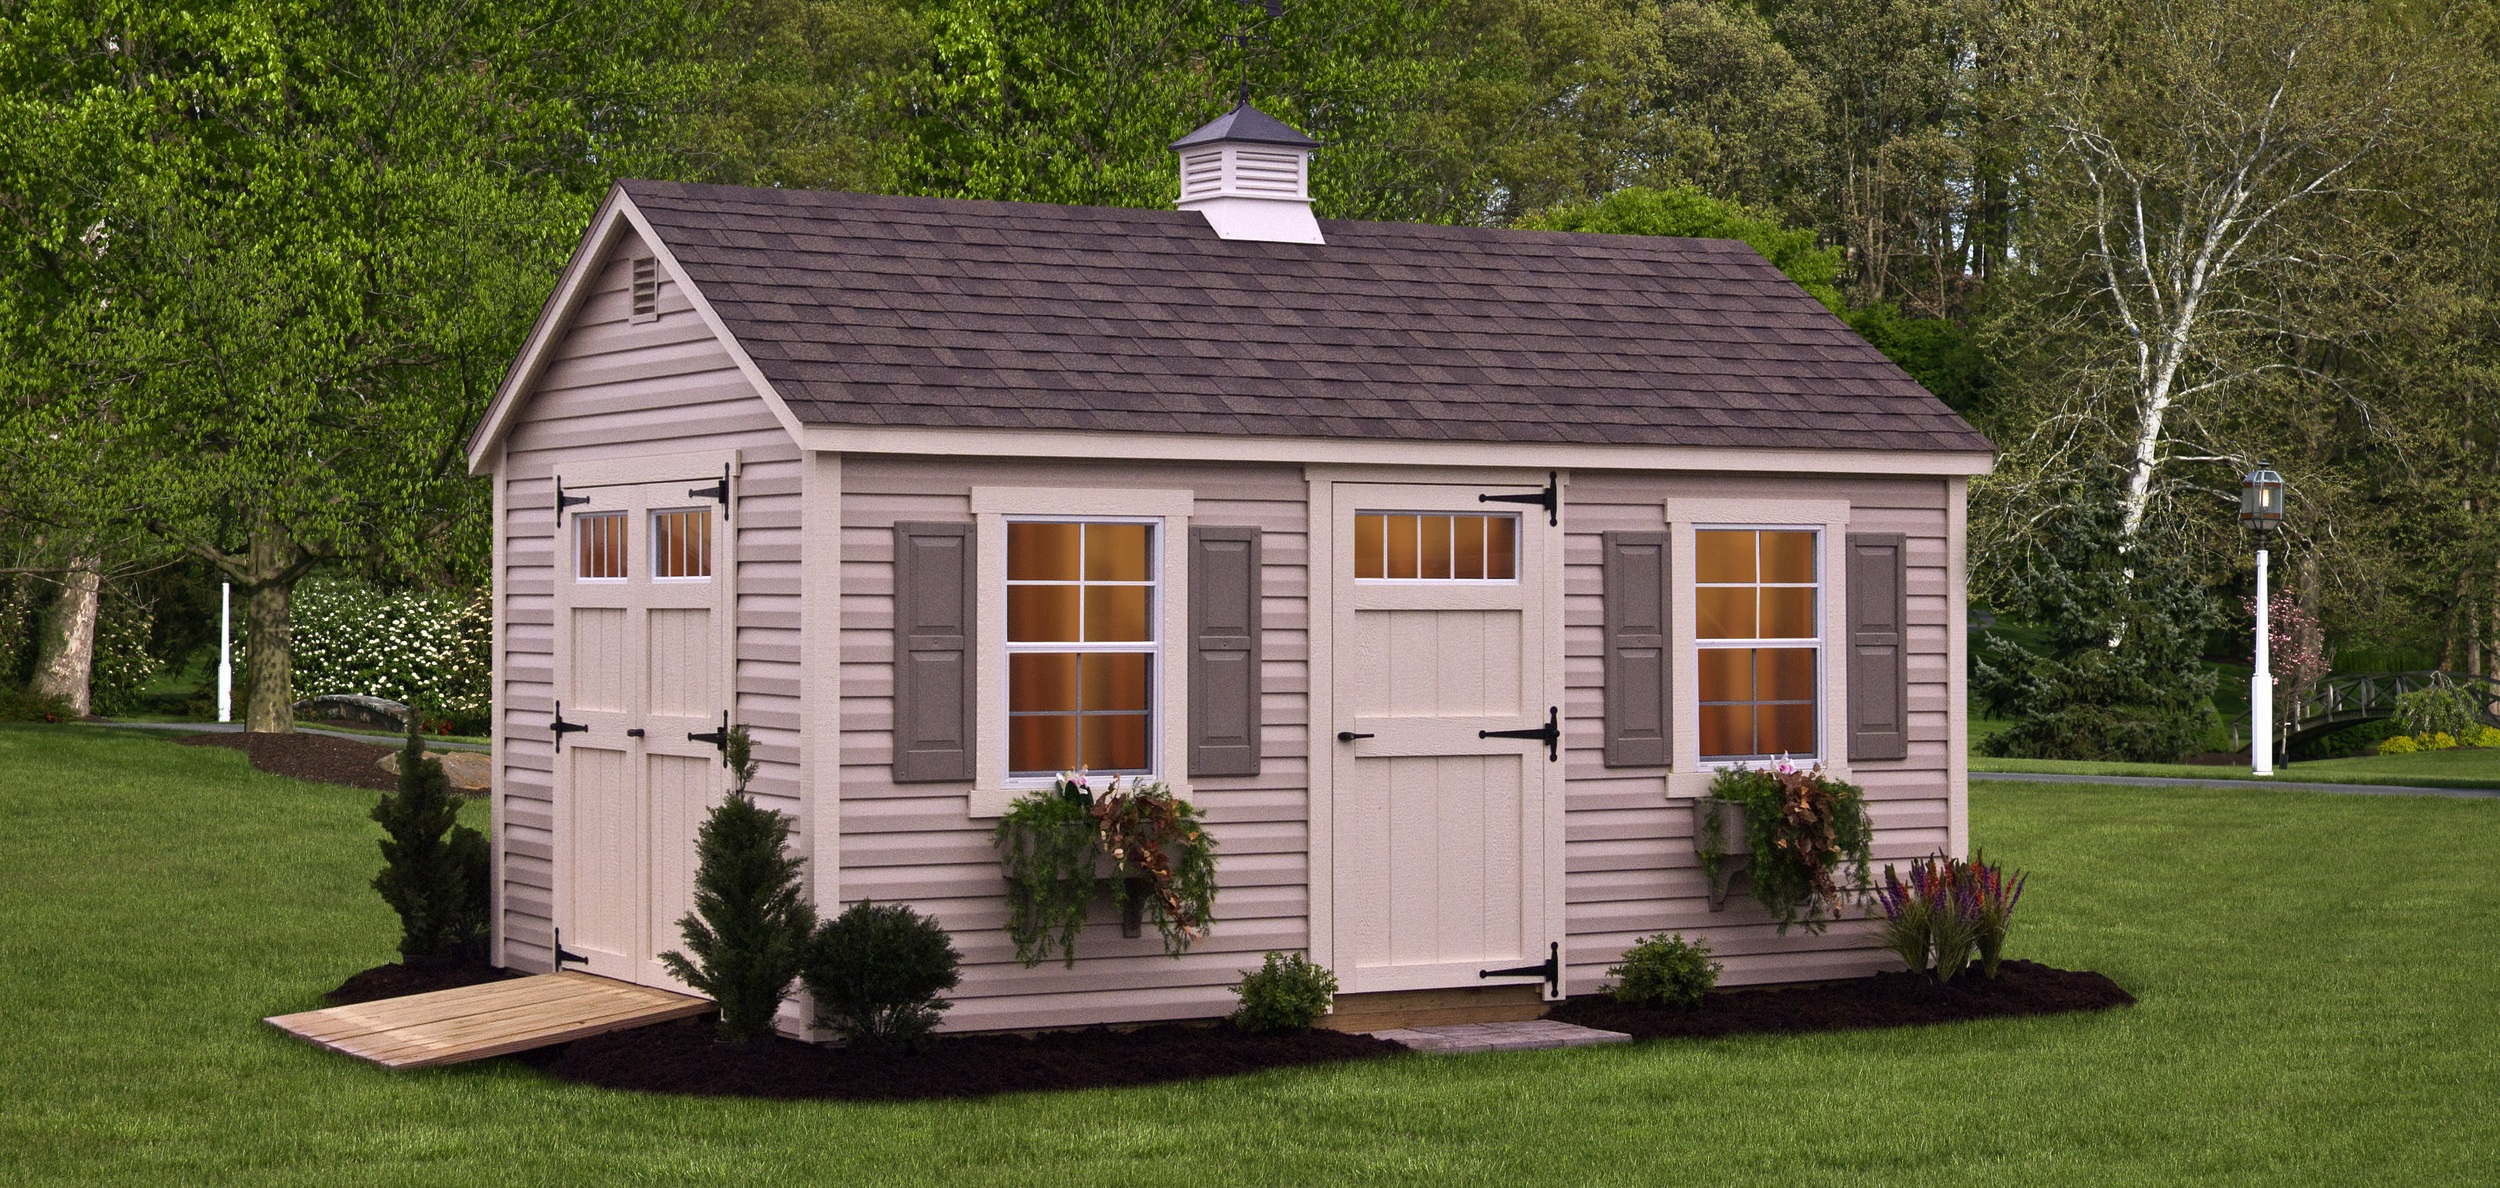 new england shed on back_0.jpg